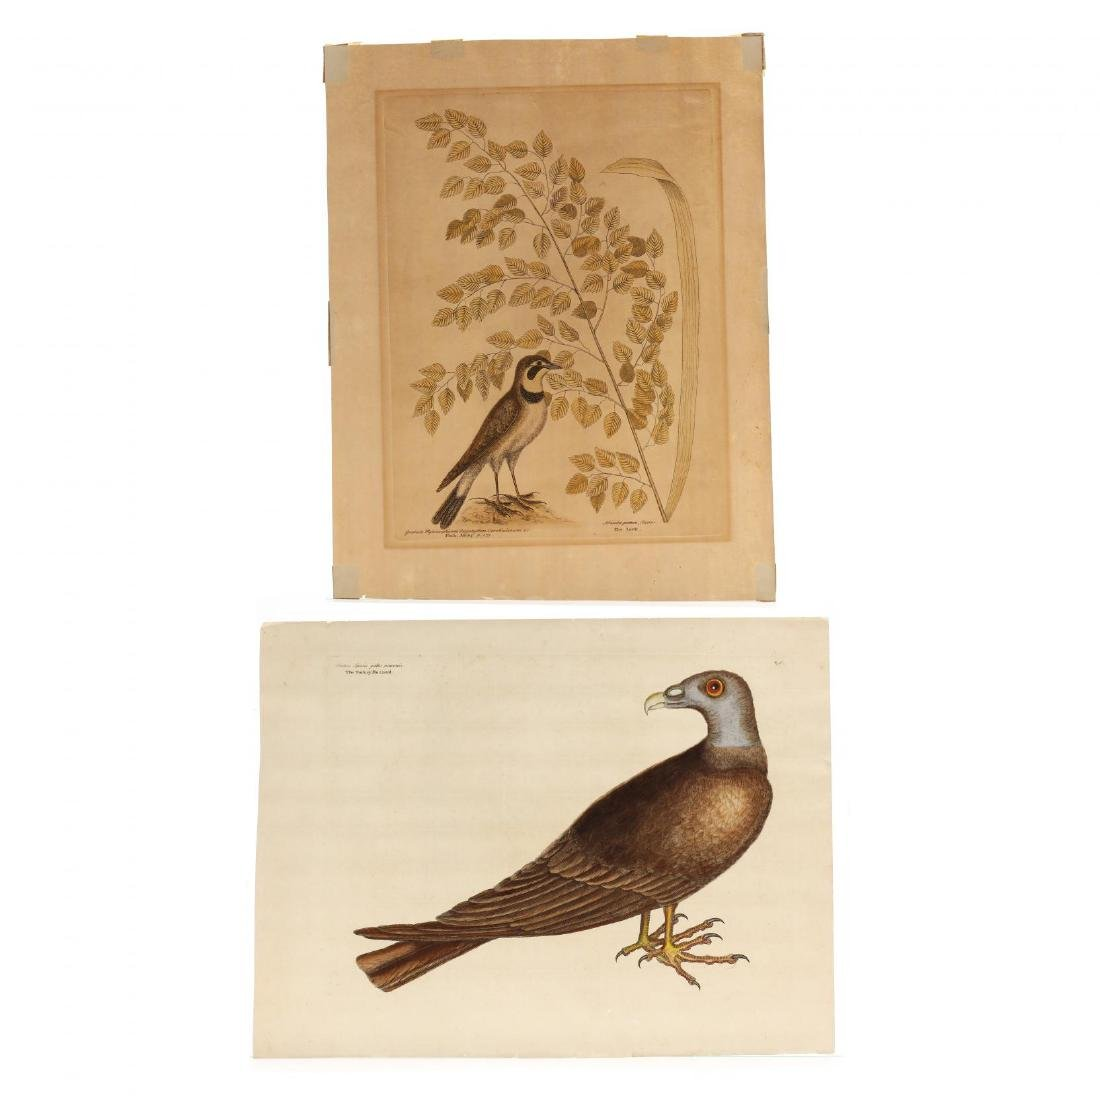 Mark Catesby (British, 1679-1749), Two Engravings from